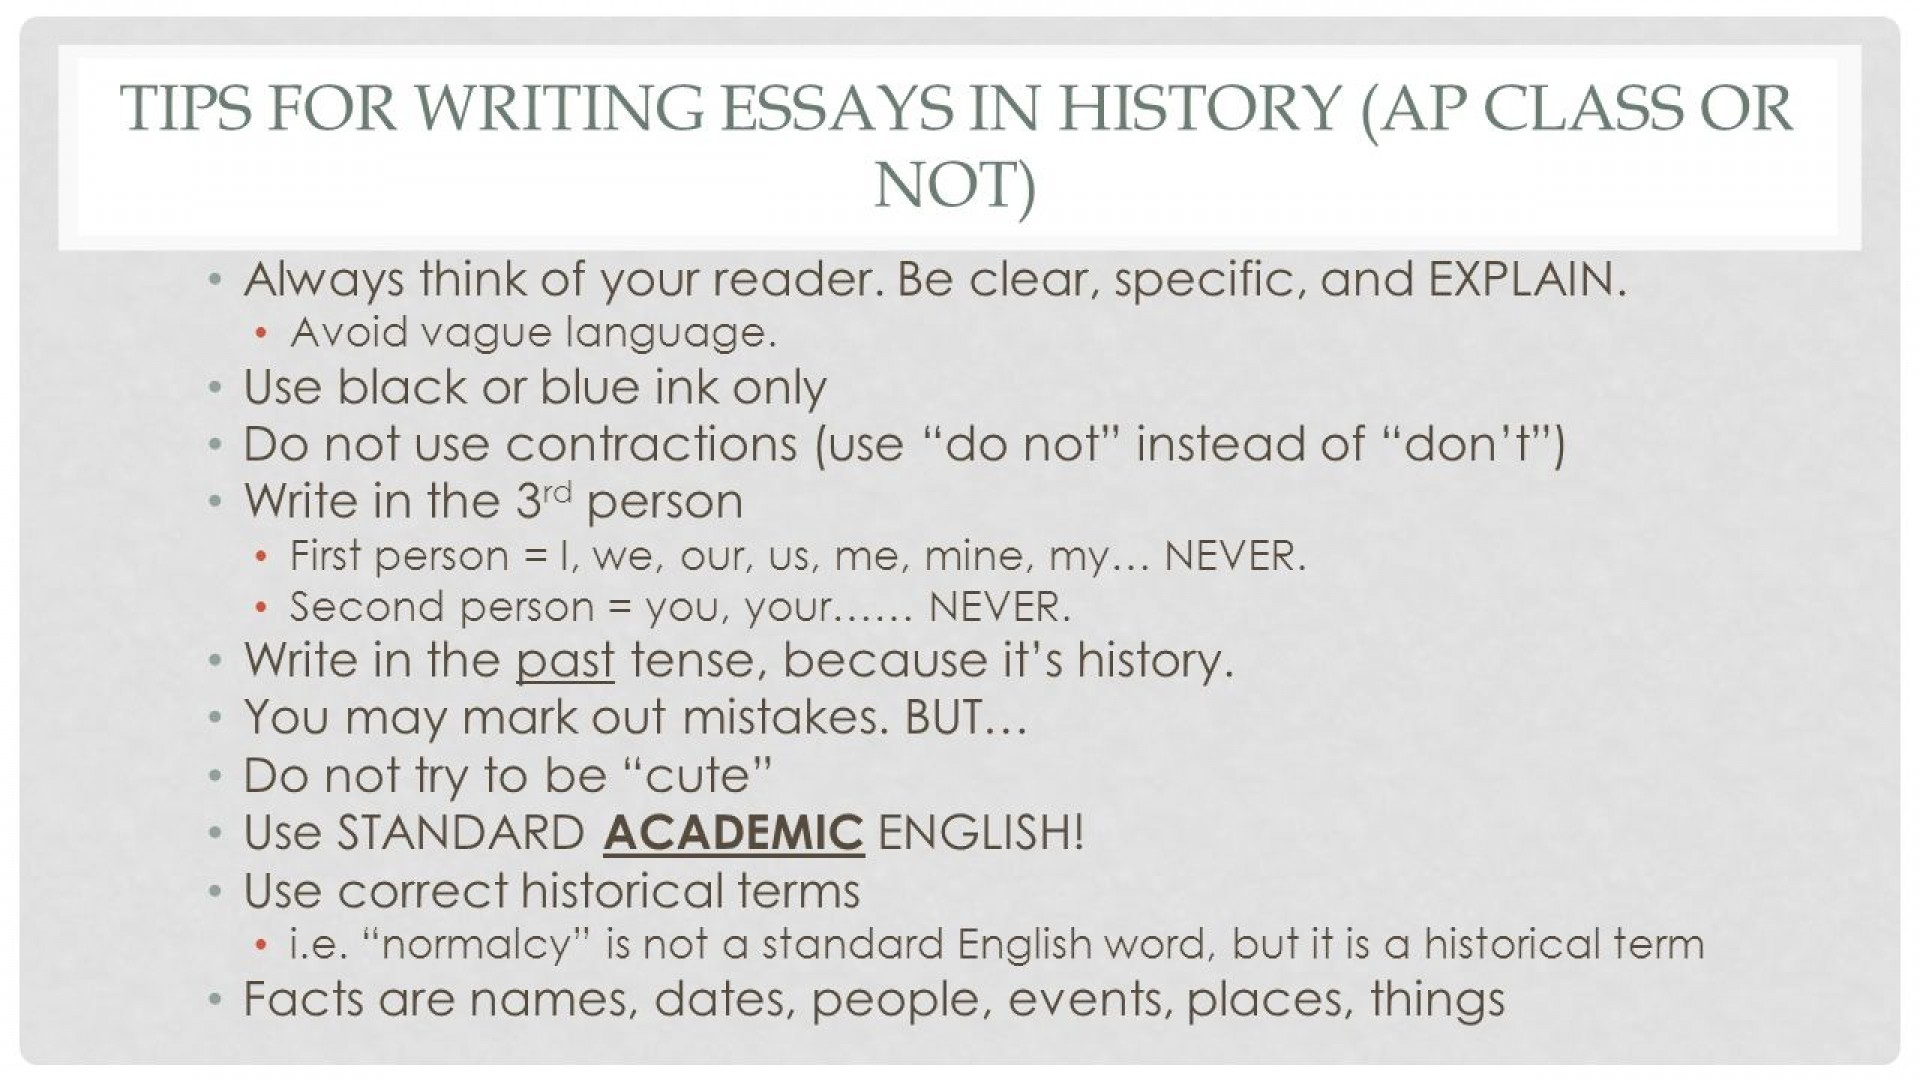 010 Essay Example How To Write Long The Question Ppt Downl In One Night For Ap Us History Proposal World With Little Information Quickly Apush Dreaded A Continuity And Change Personal Fast 1920